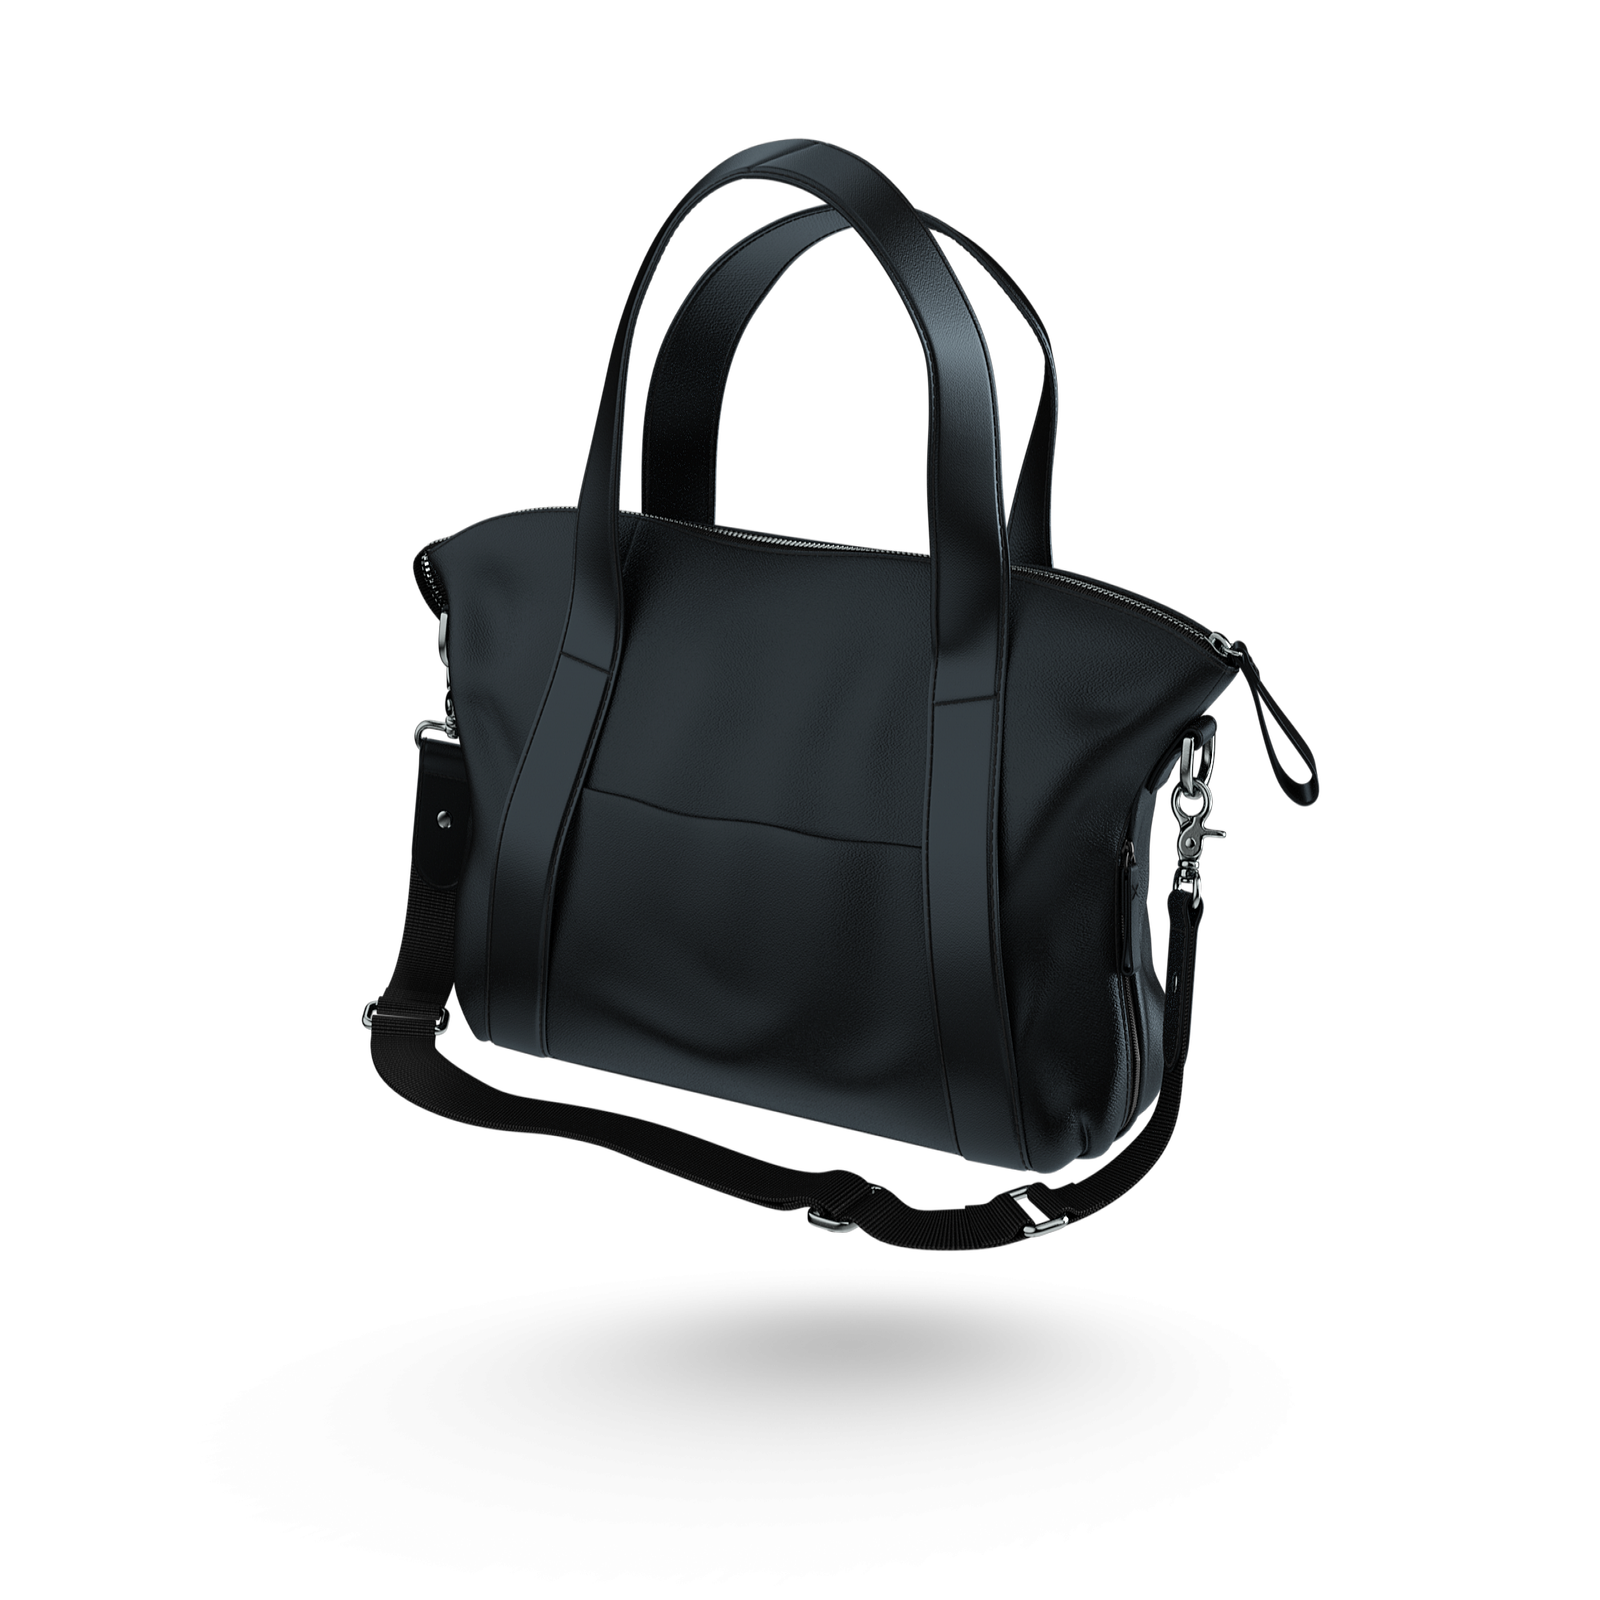 Bugaboo leather bag